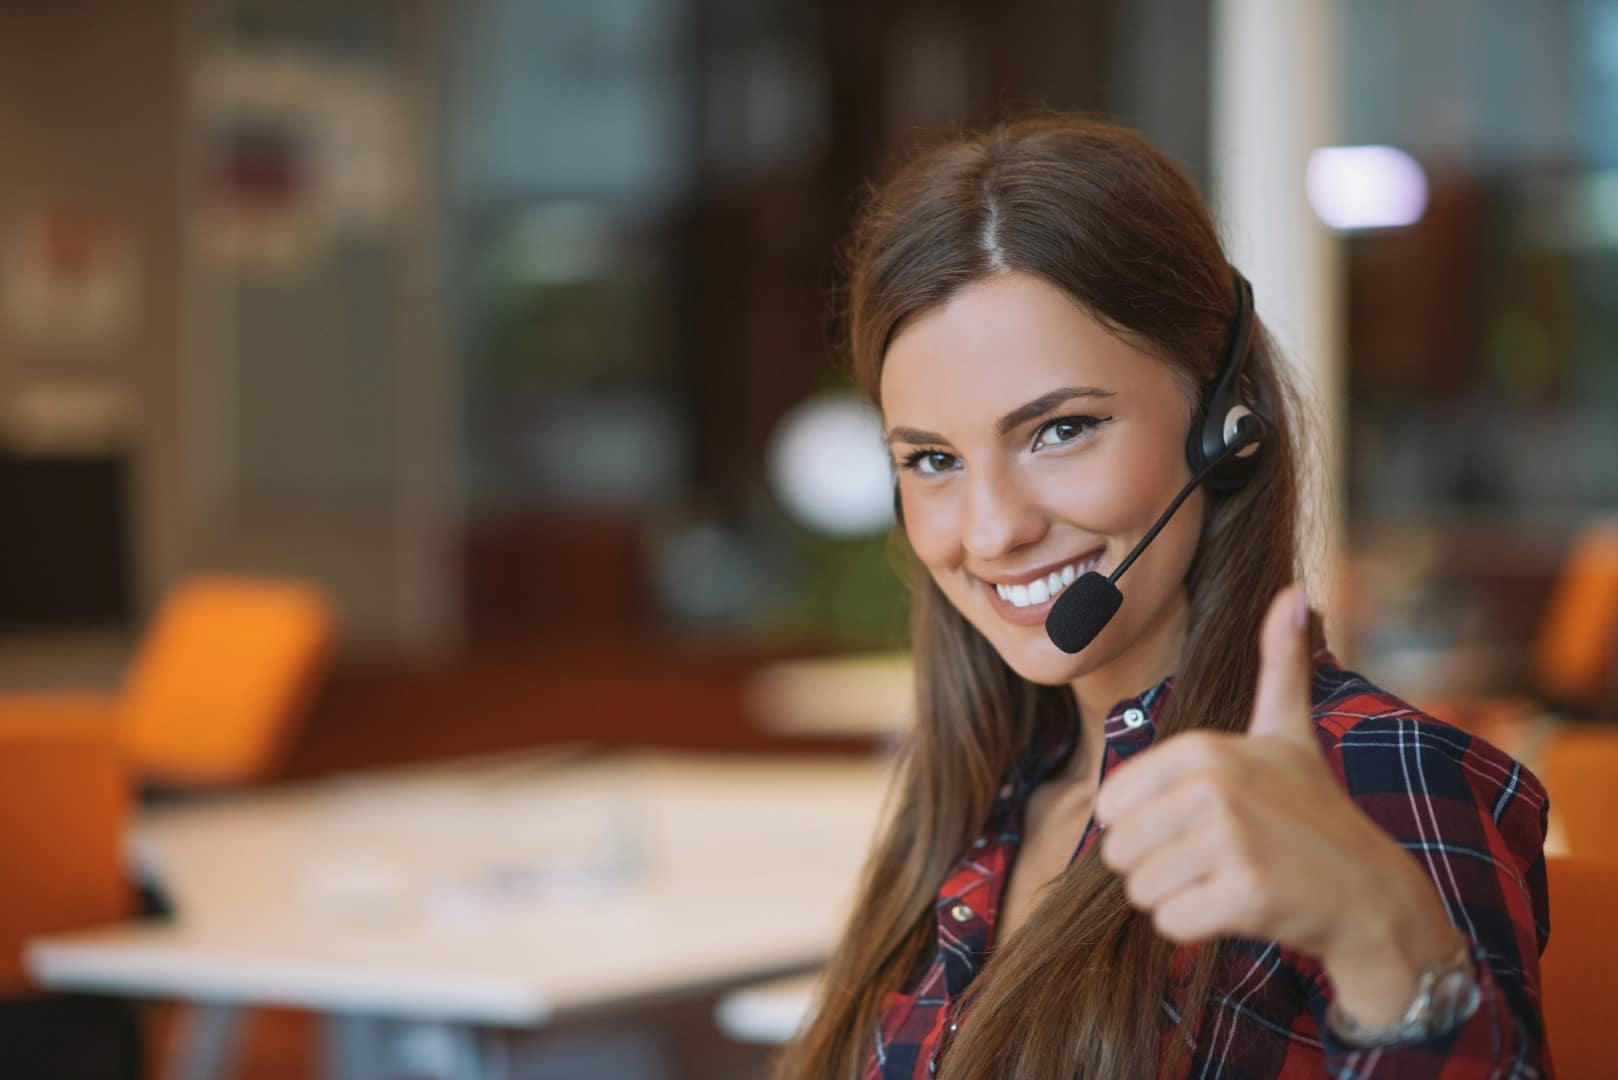 Improving Contact Center Performance Using Gamification